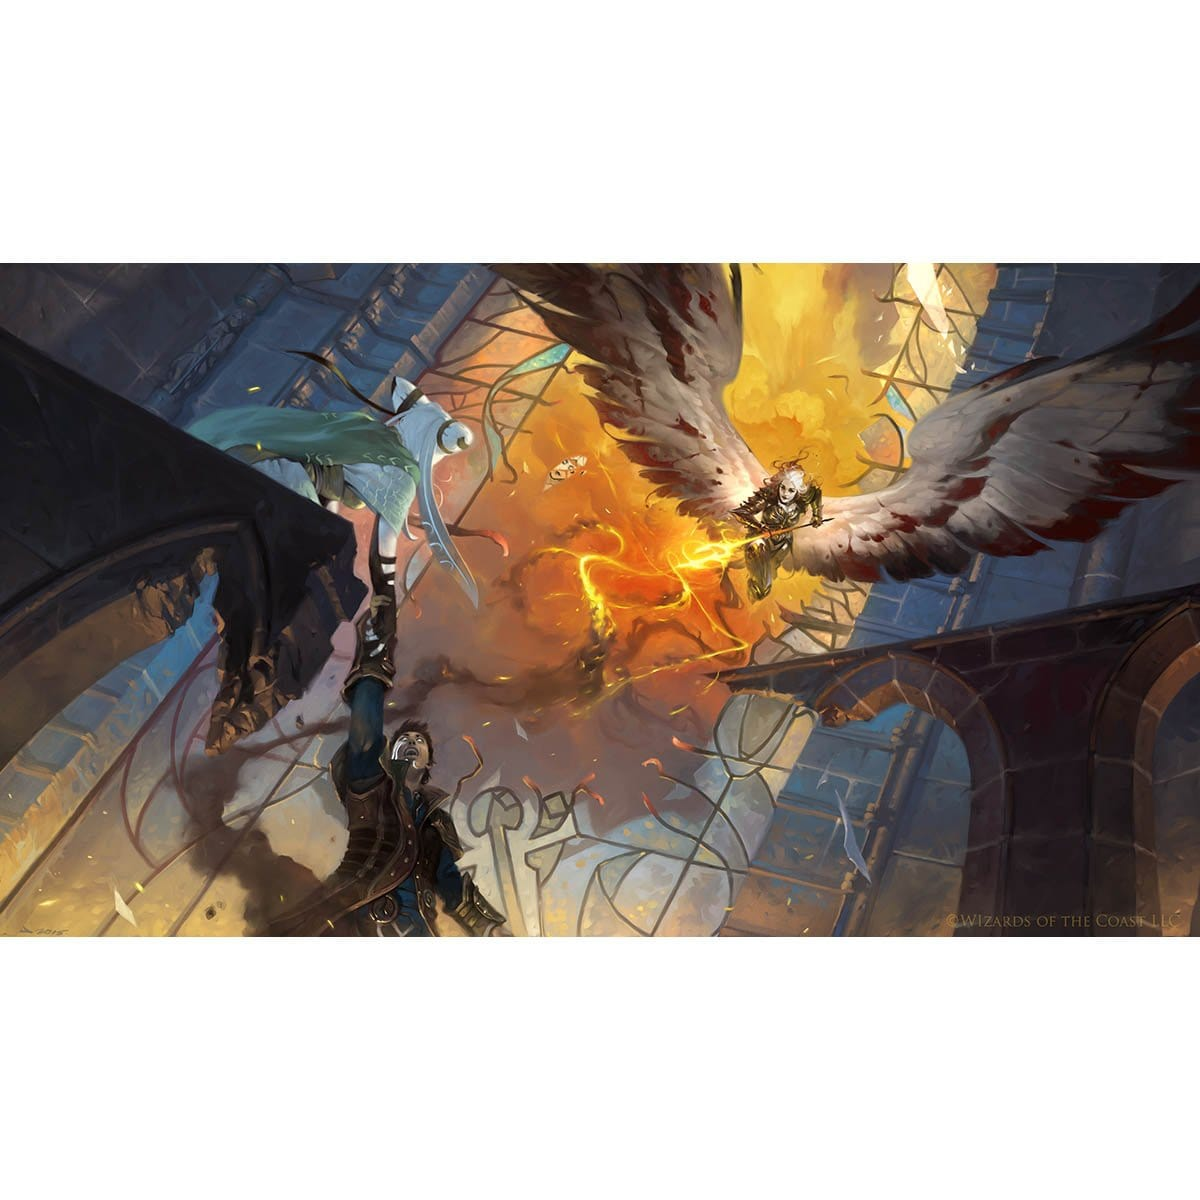 Avacyn's Judgement Print - Print - Original Magic Art - Accessories for Magic the Gathering and other card games